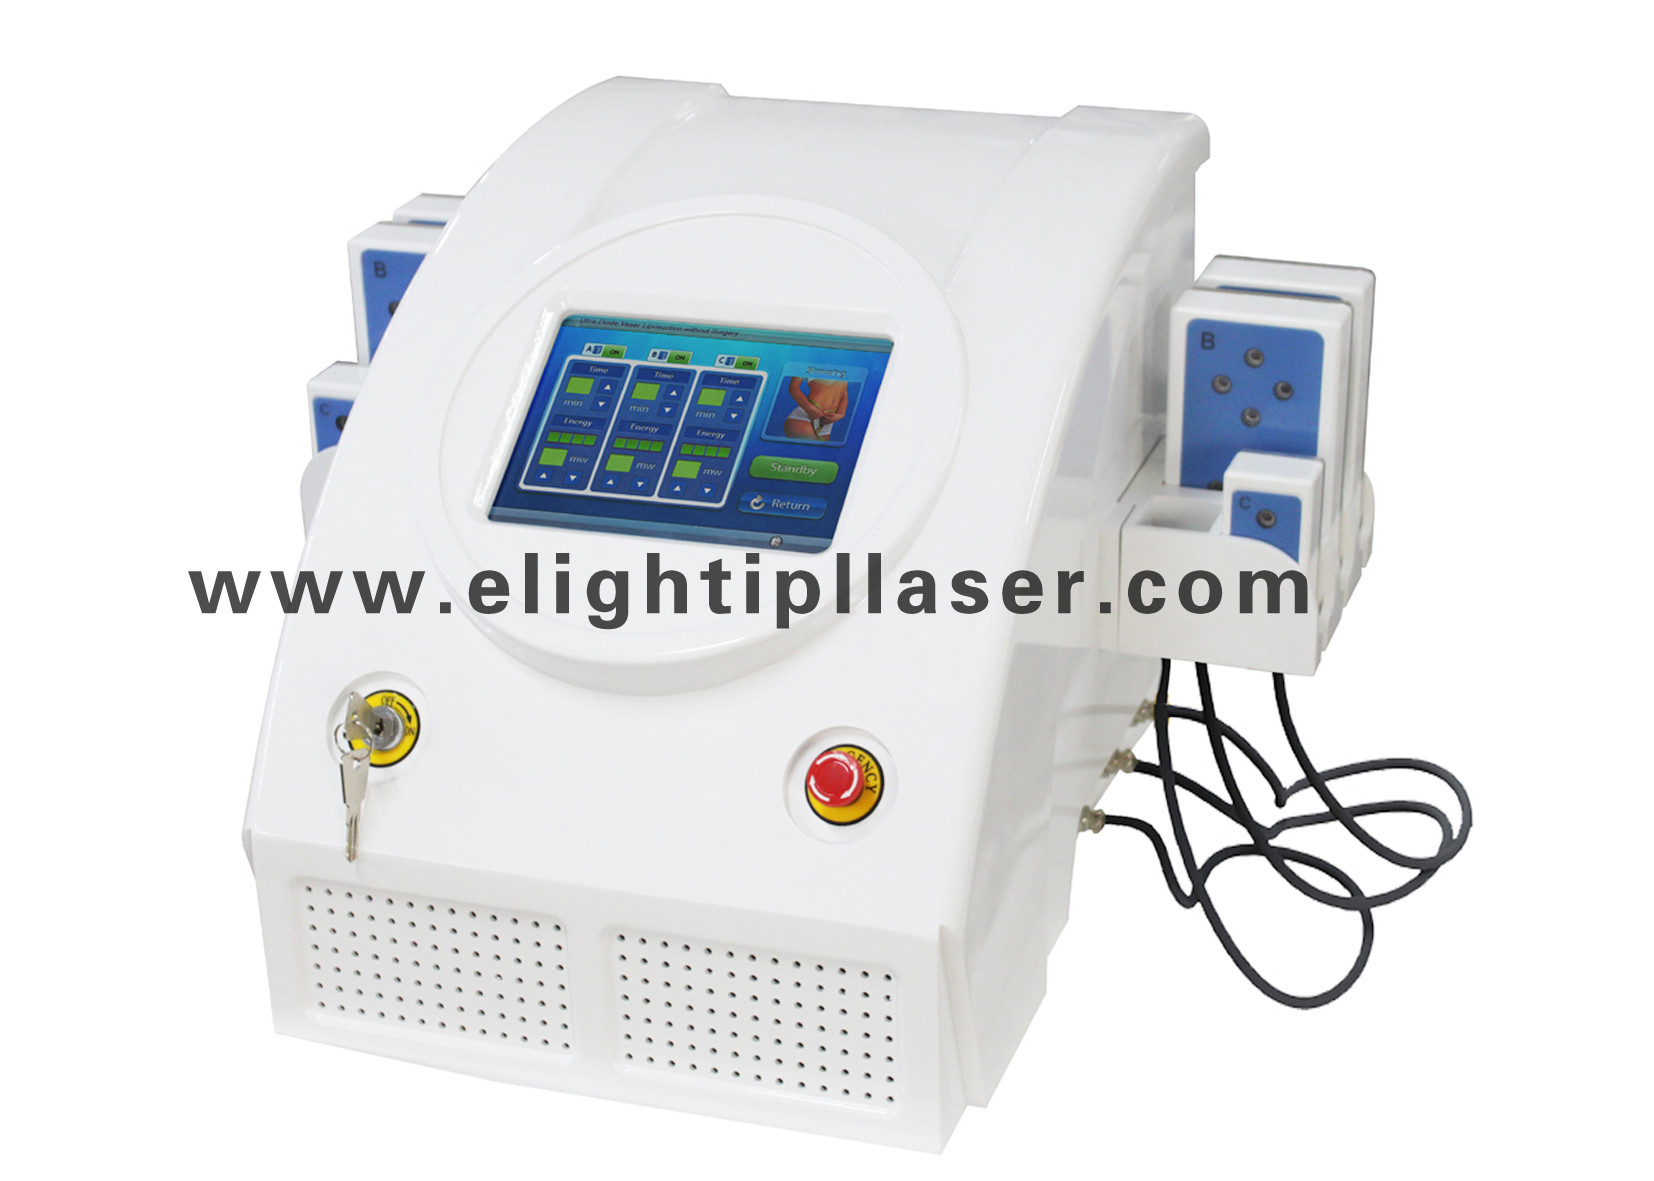 Lipo Laser Cellulite Reduction Hip Slimming System , Non Surgical Liposuction